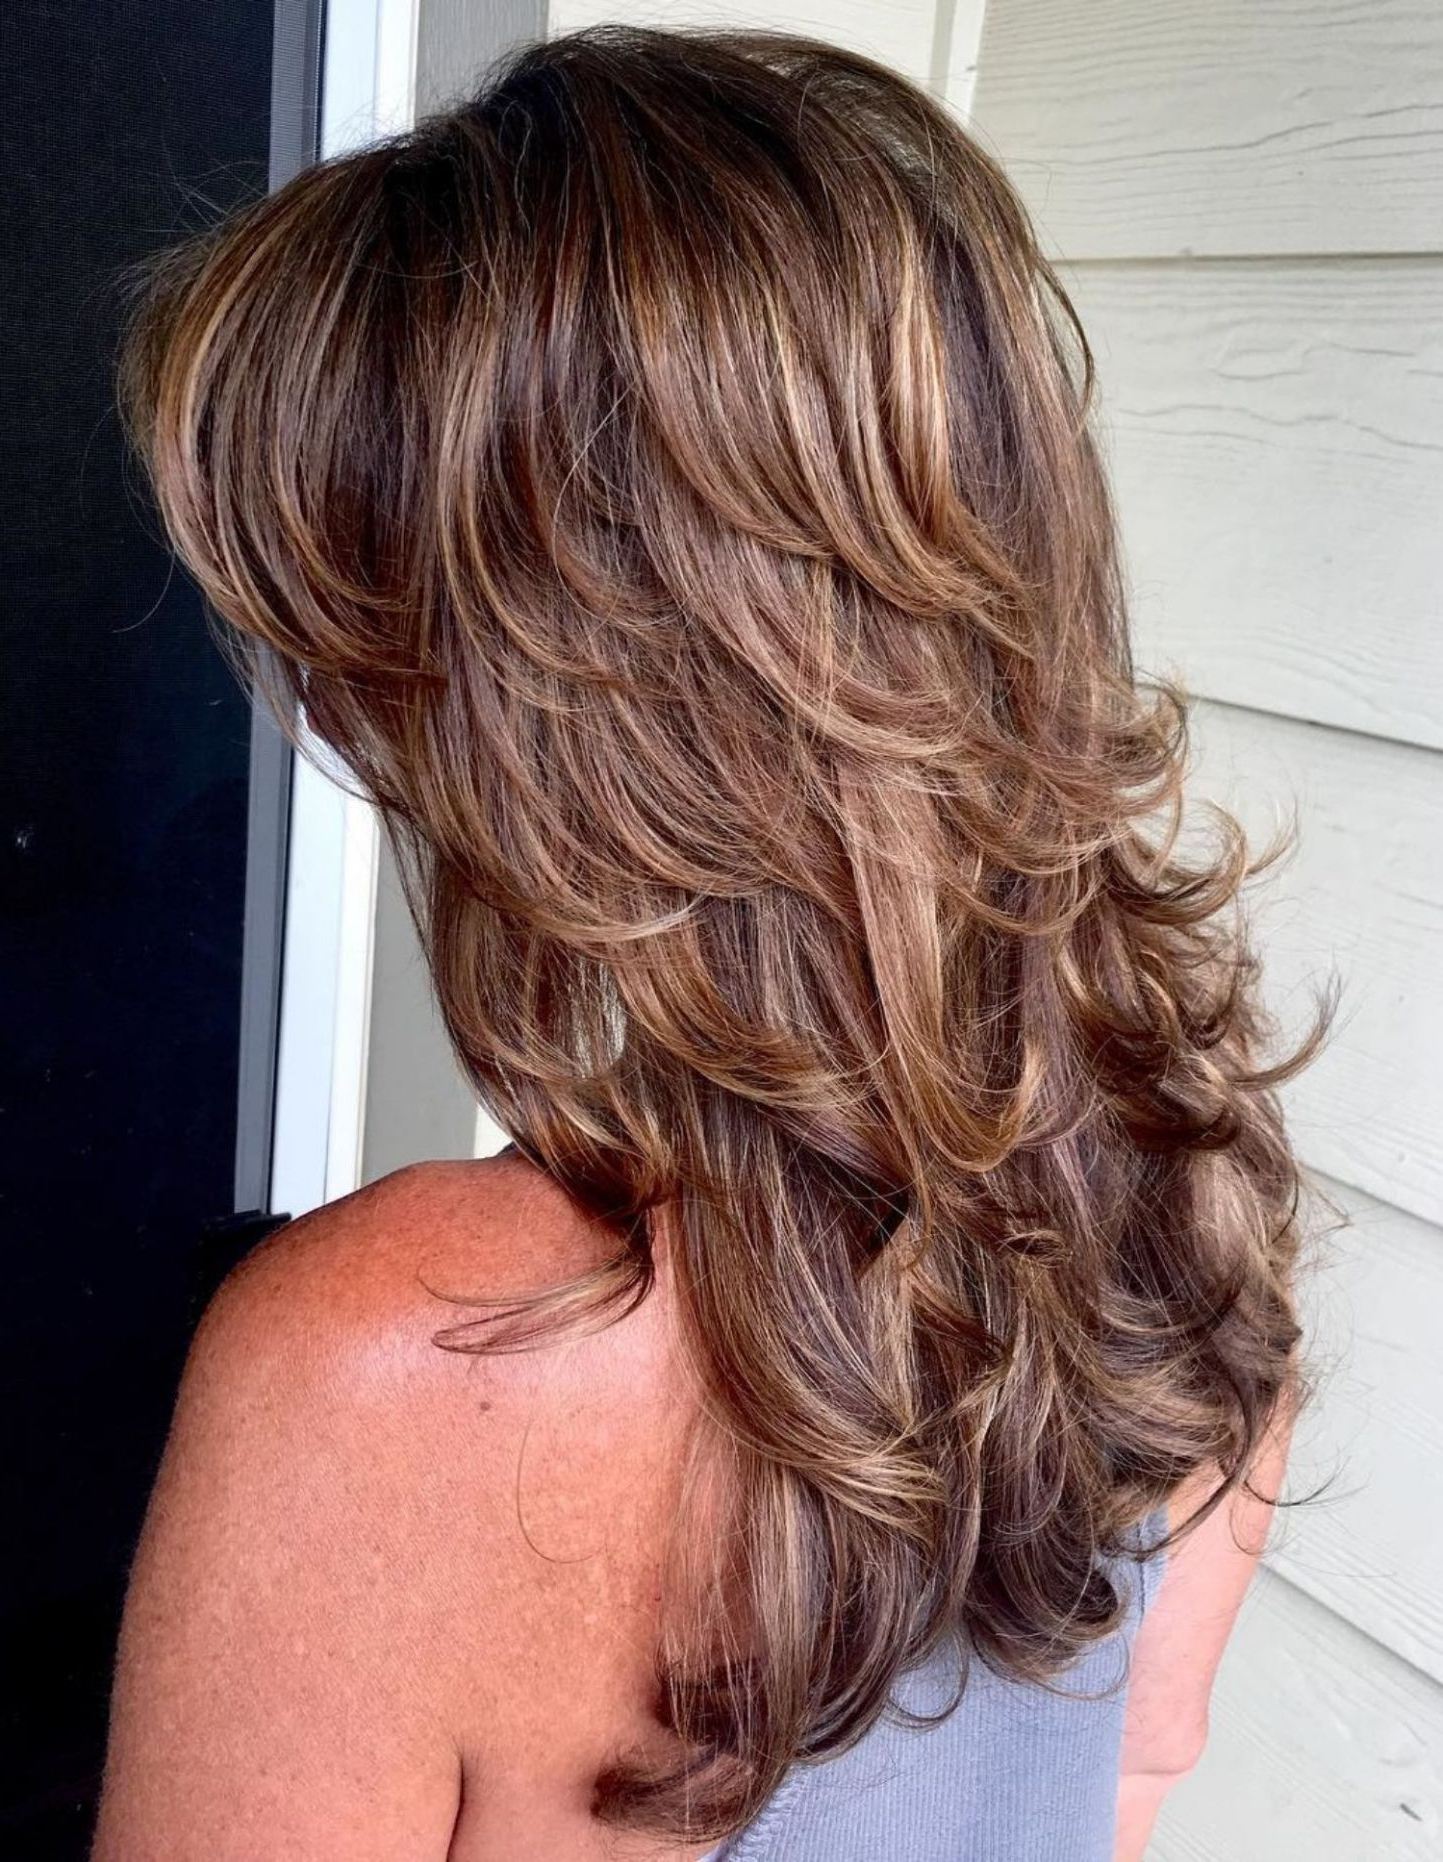 Current Long Shag Haircuts With Extreme Layers With Pin On Long Hairstyles (View 4 of 20)